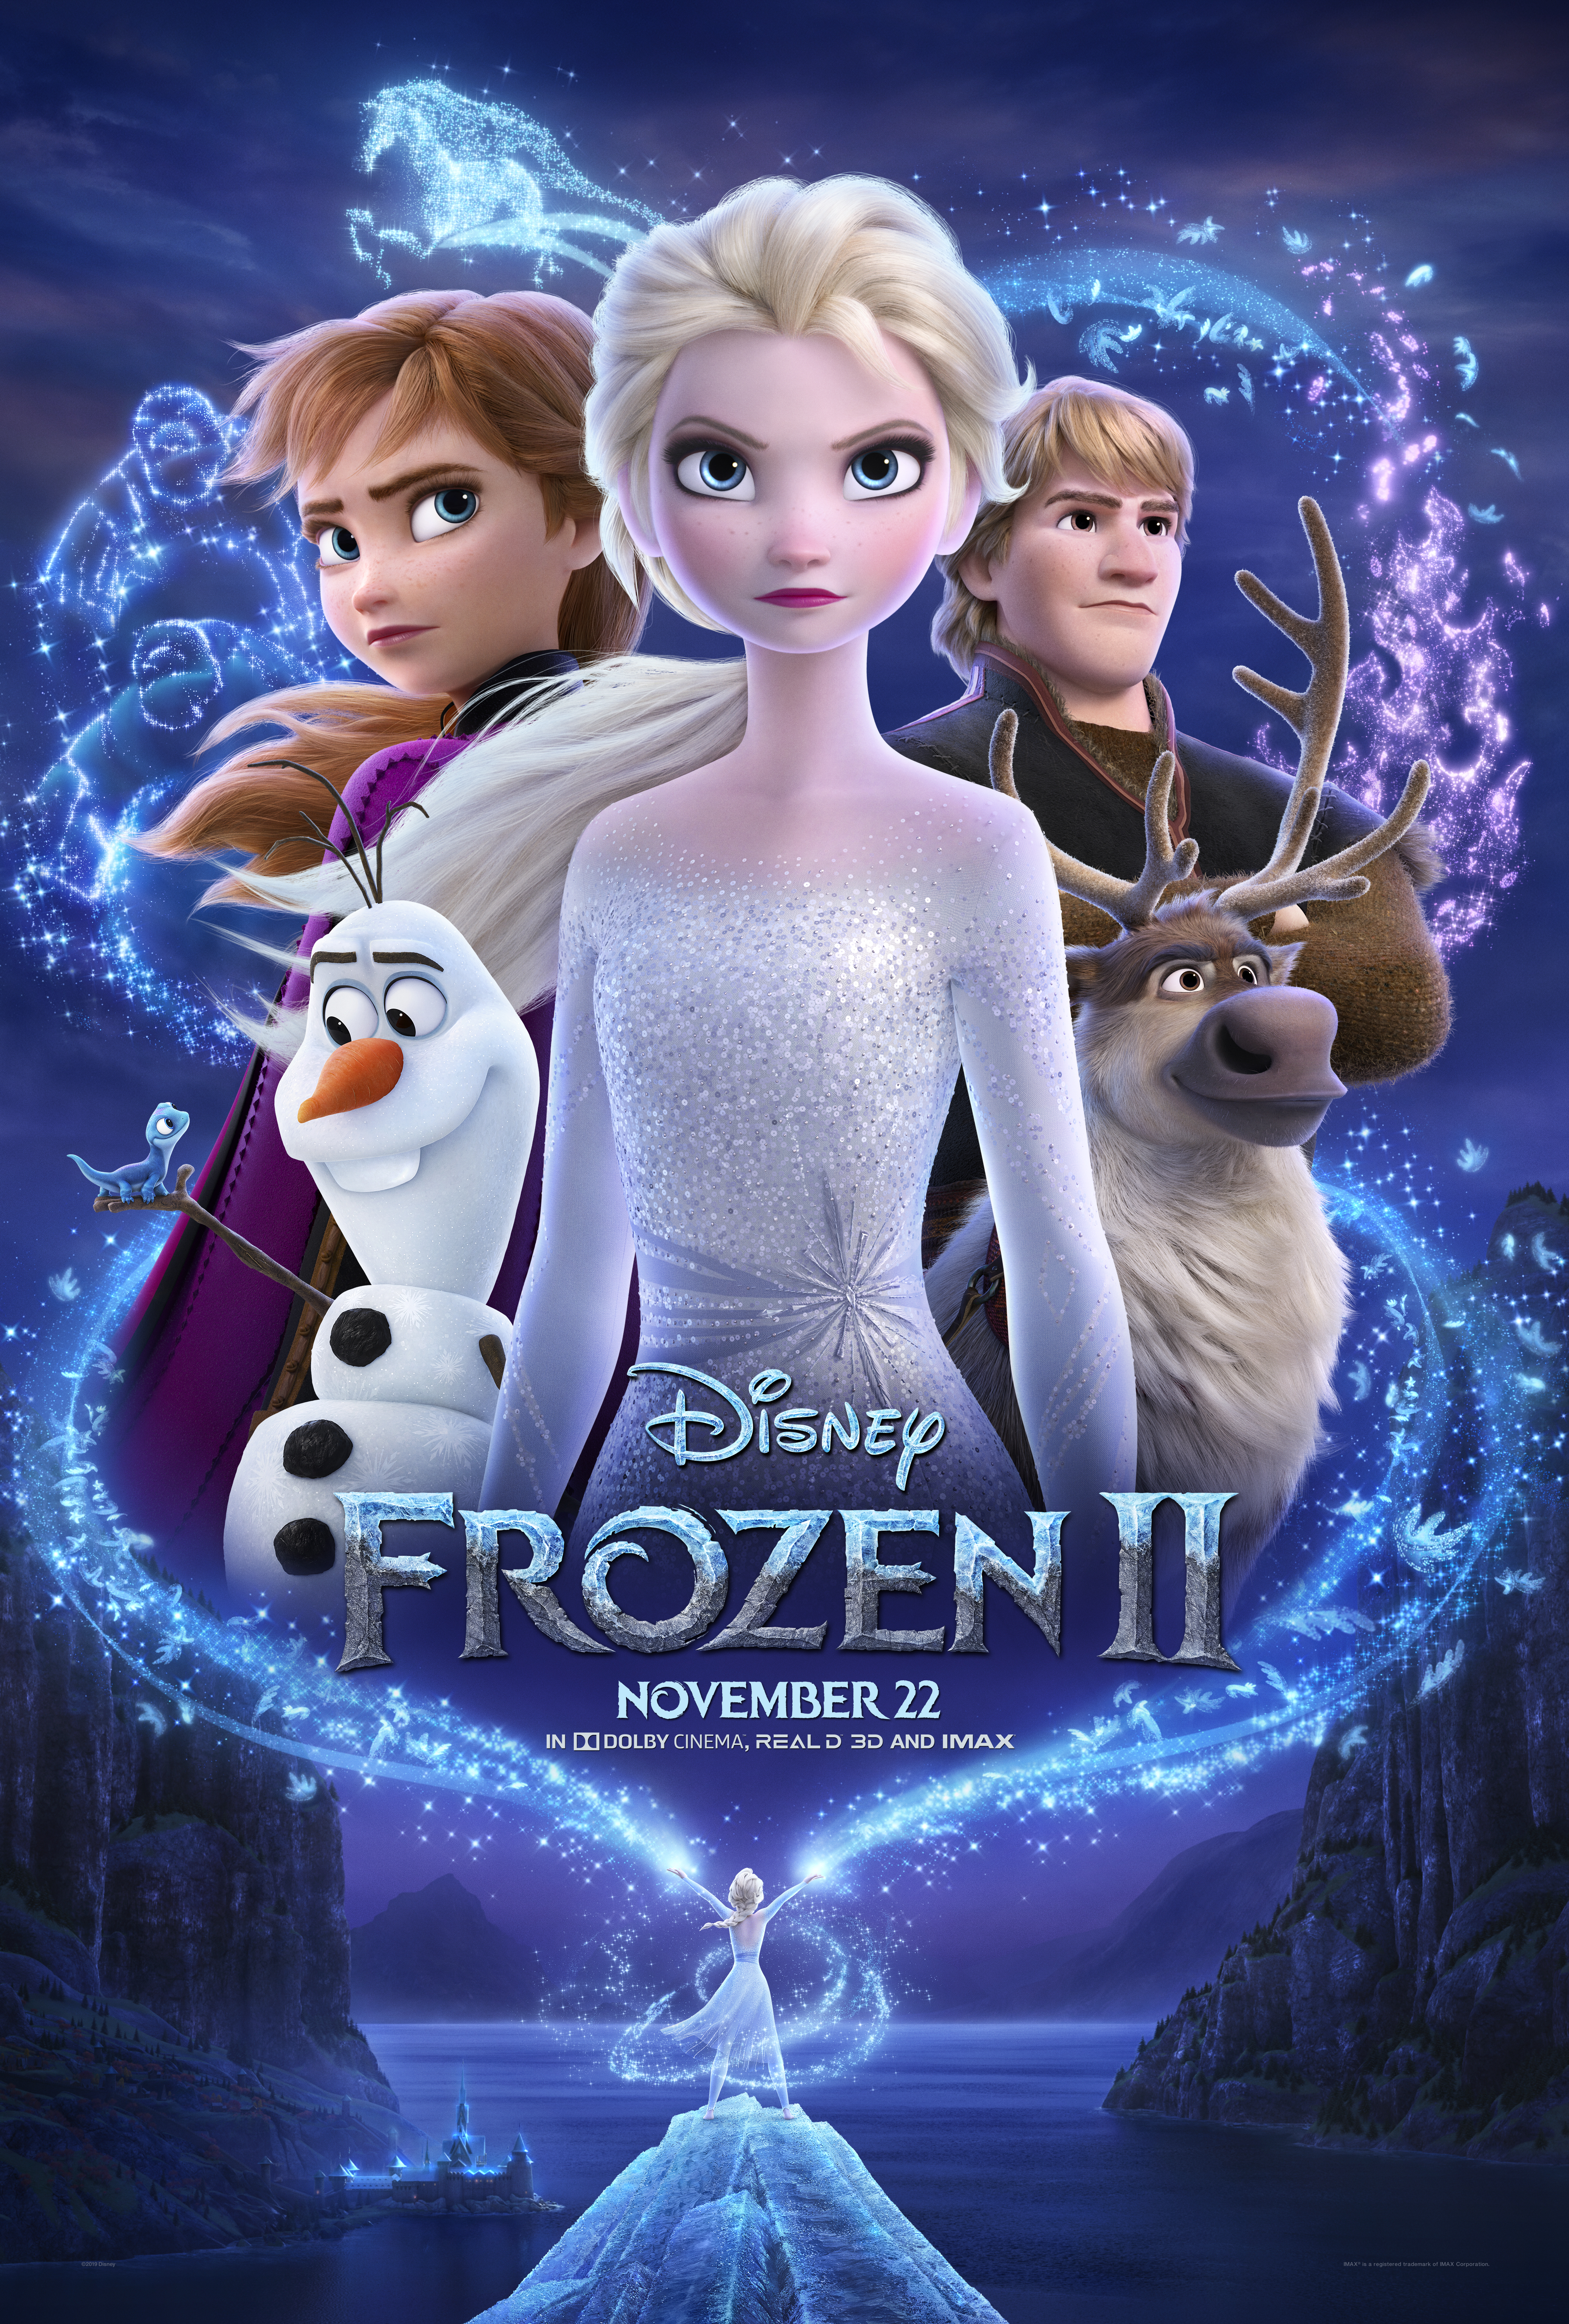 [PG] Frozen II (2019) English WEB-DL - 480P | 720P - x264 - 400MB | 1GB - Download & Watch Online With Subtitle Movie Poster - mlsbd